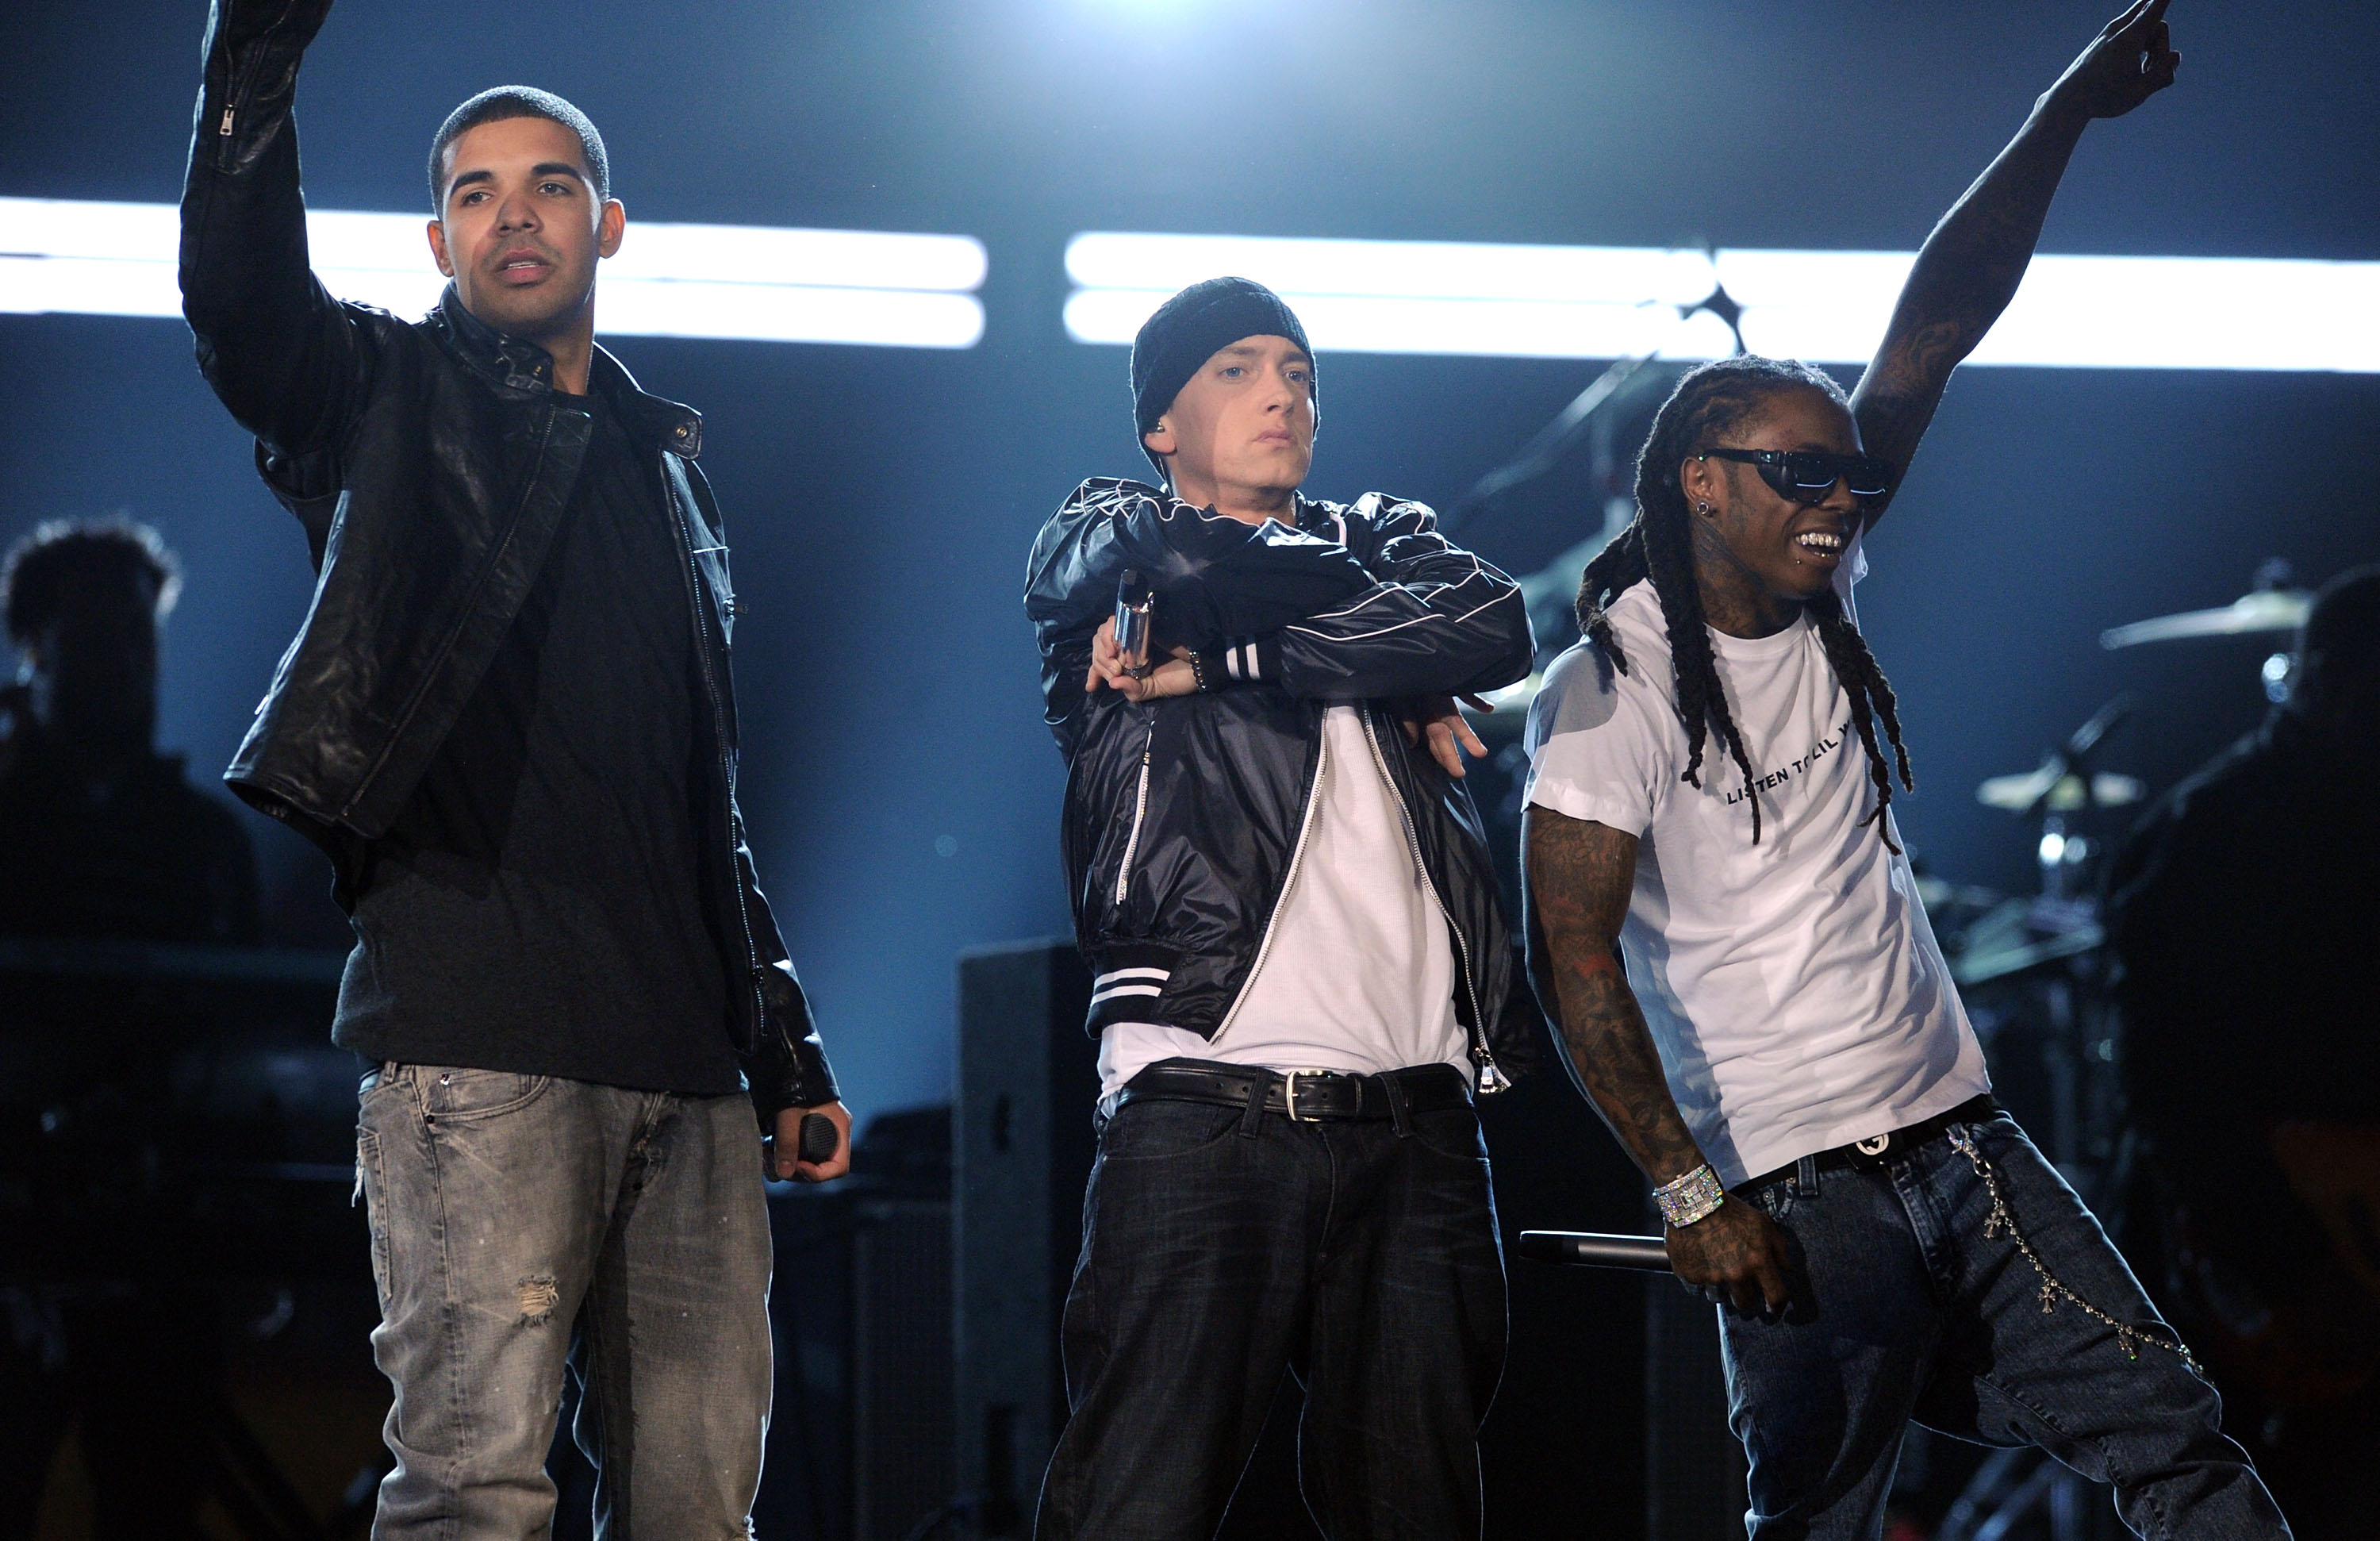 Drake and Eminem were onstage together, looking totally friendly, no signs of beef anywhere